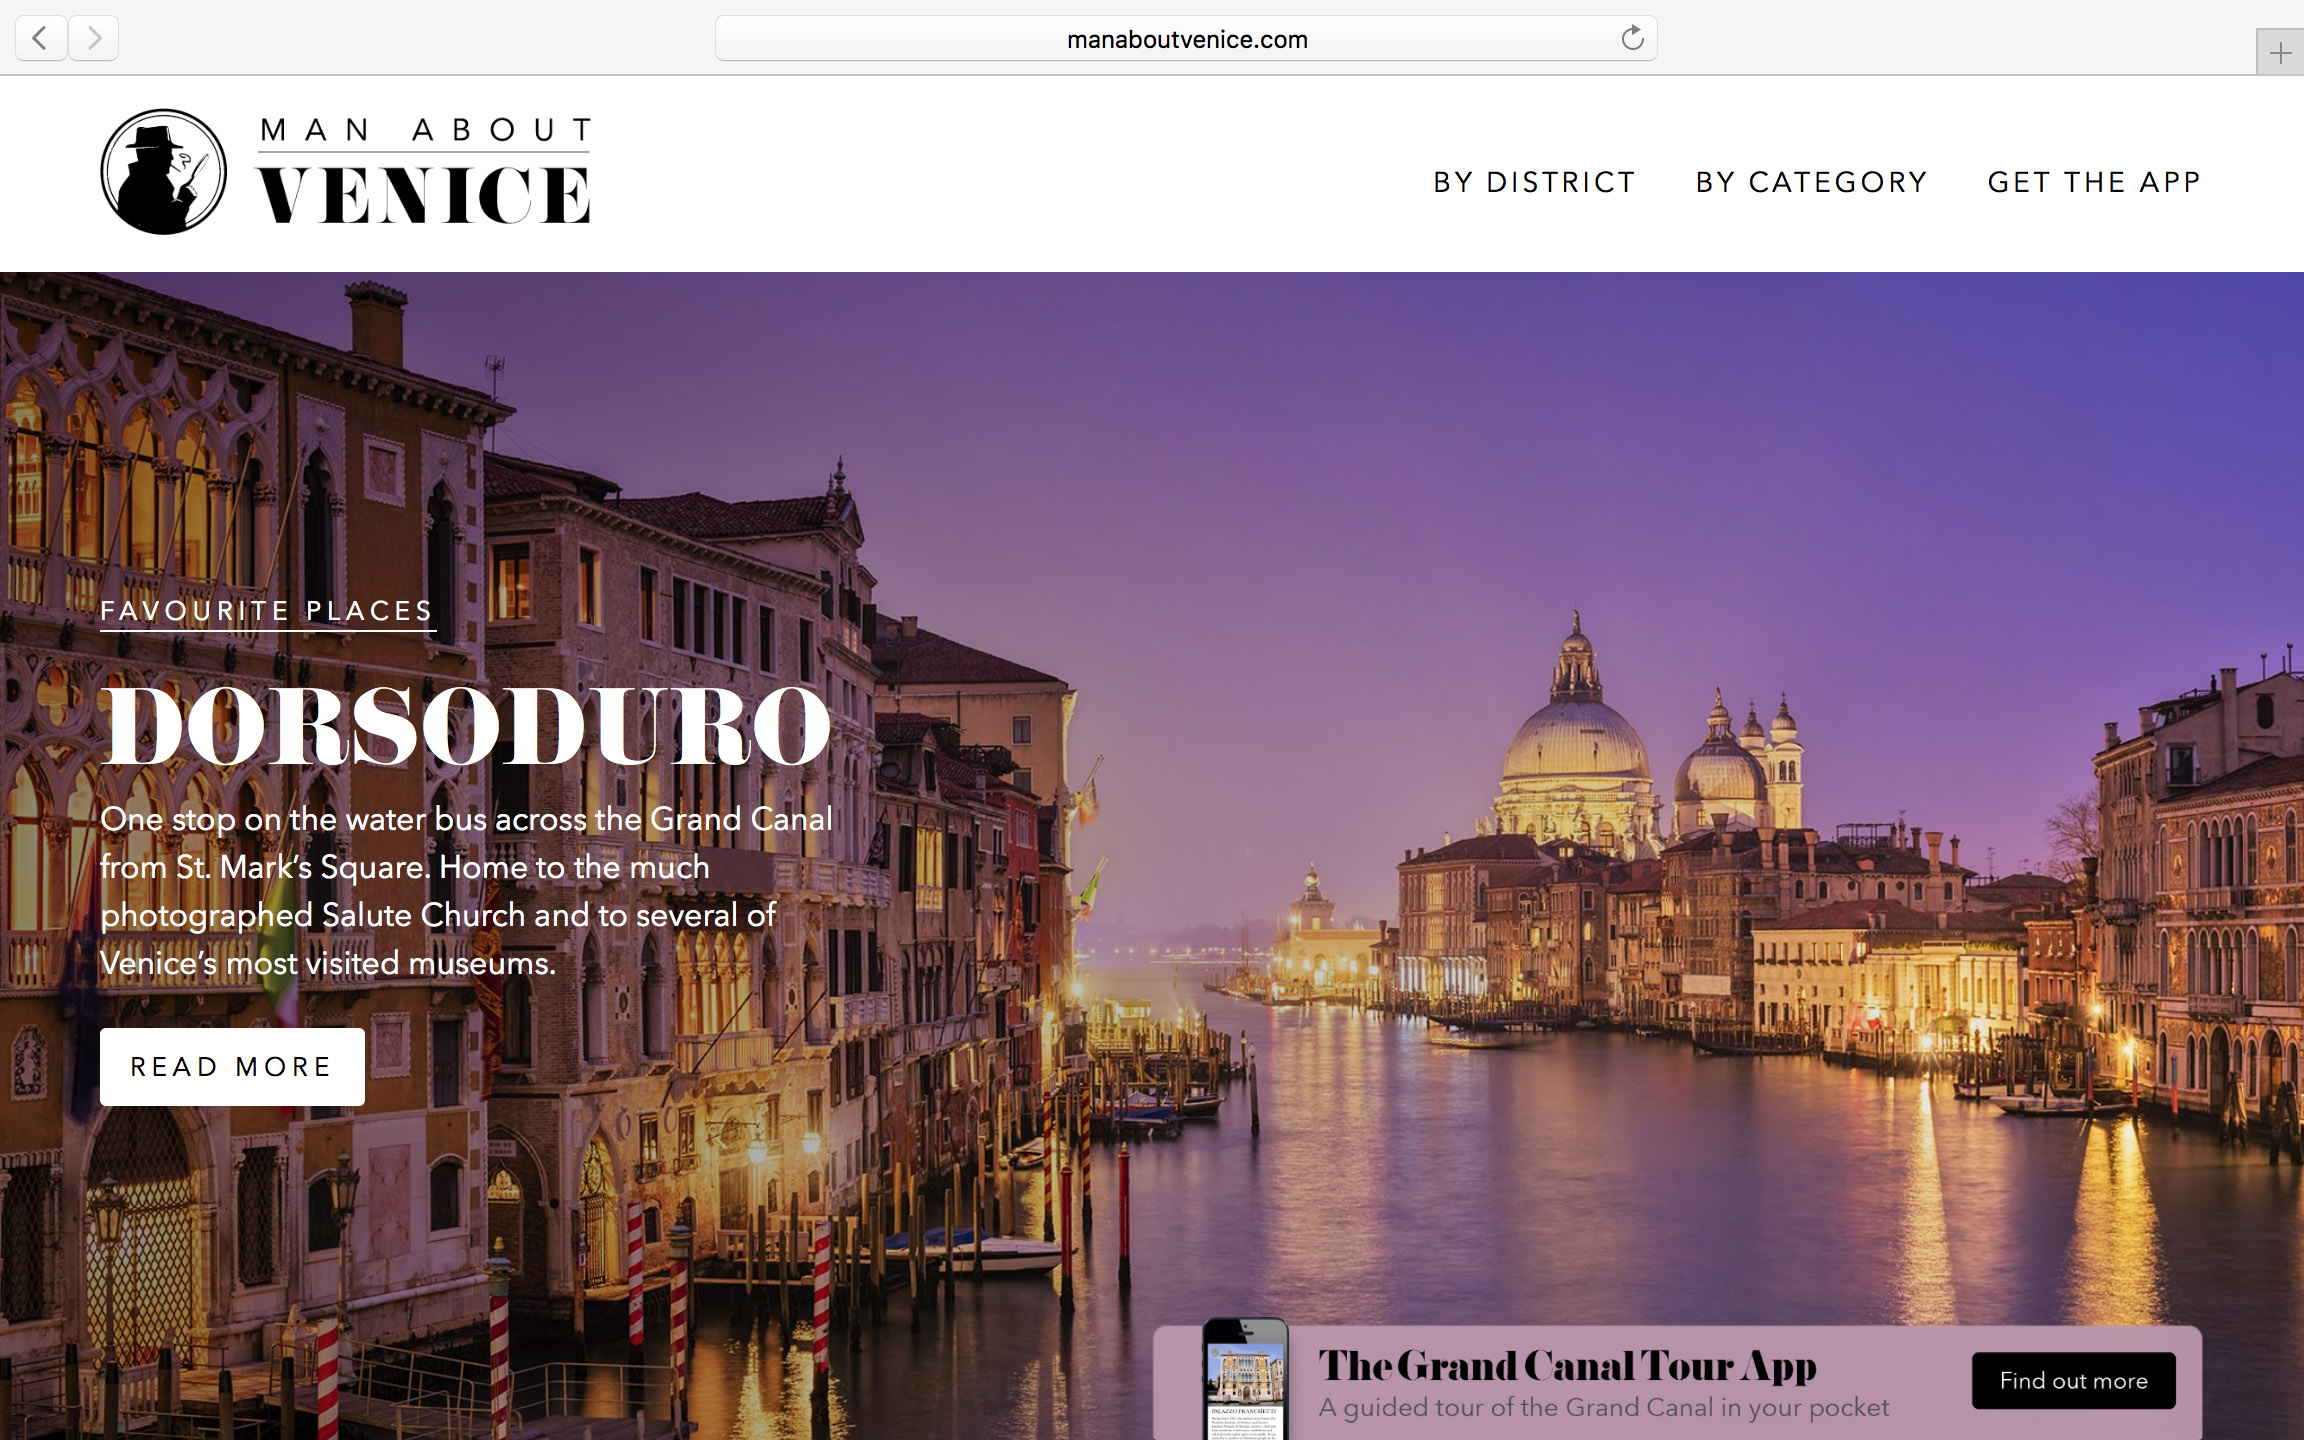 website-design-2017-man-about-venice-1